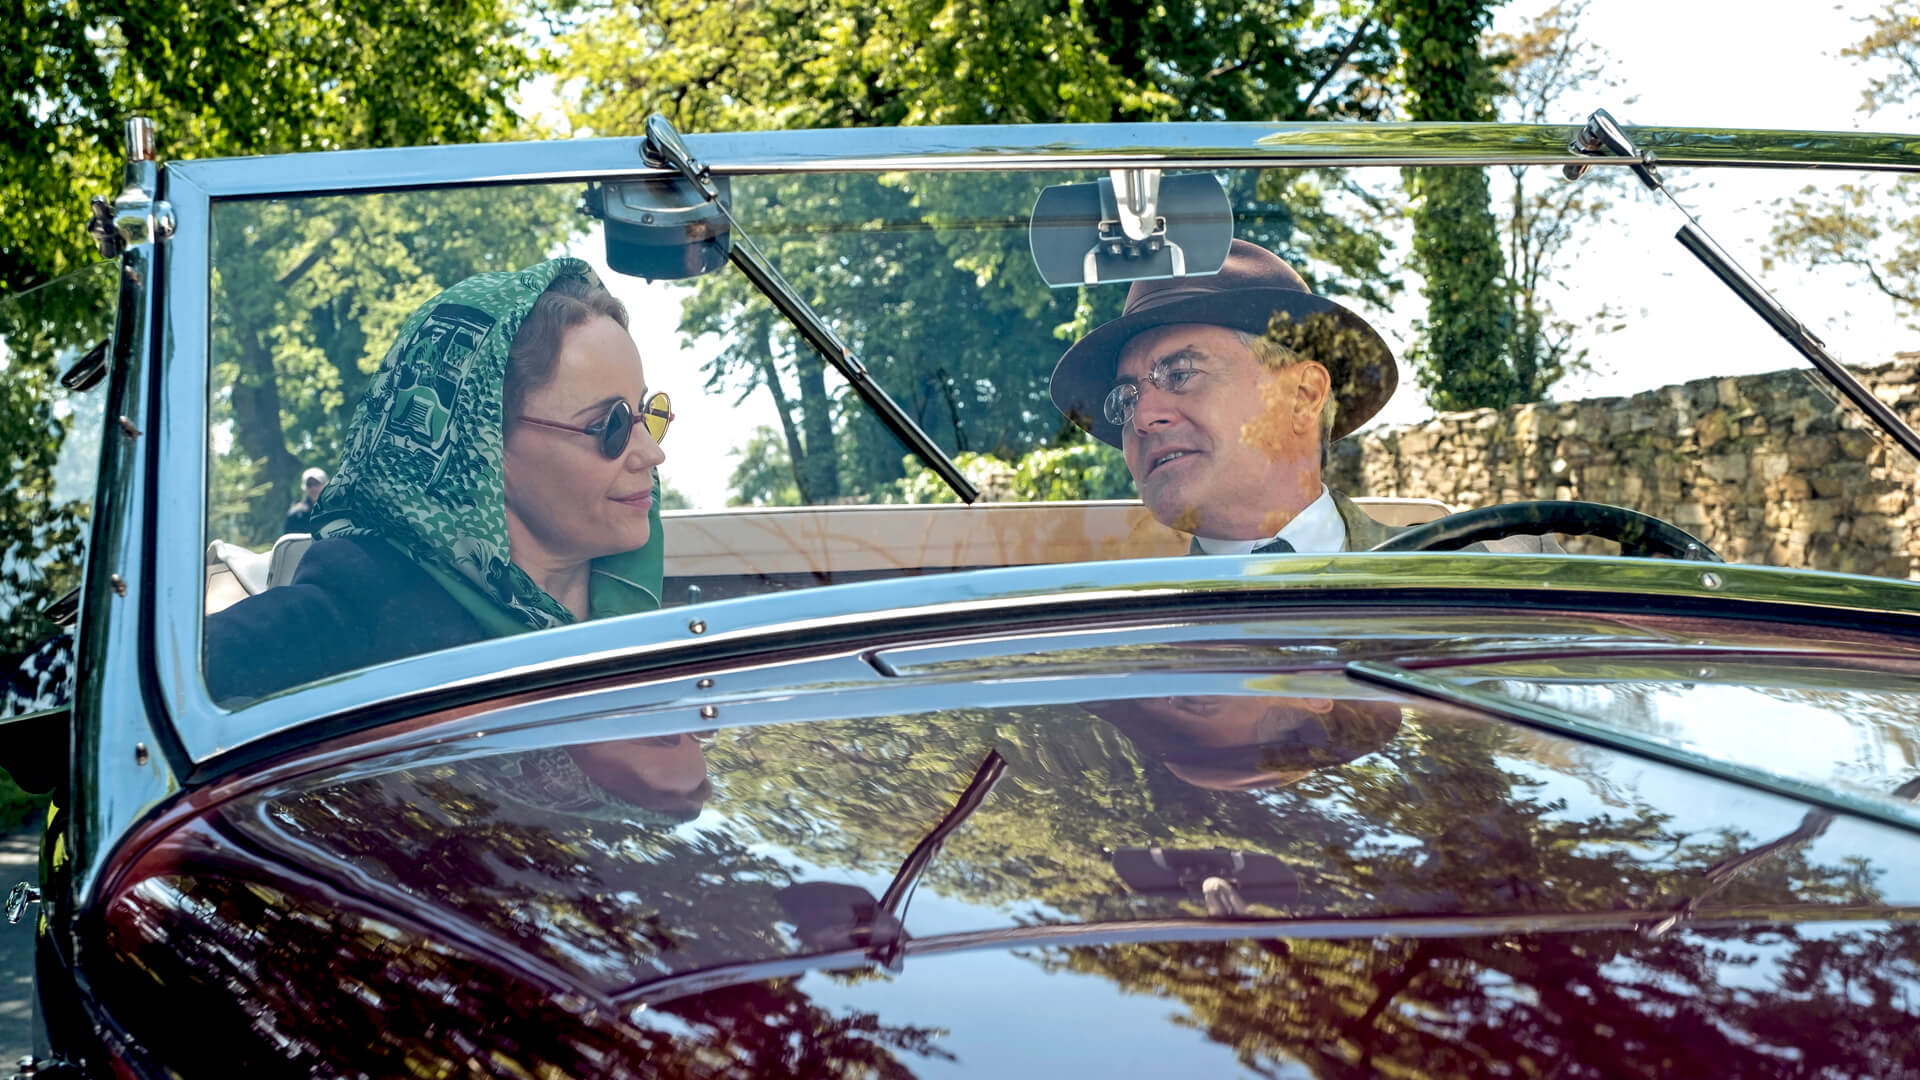 Actress Sofia Helin as Crown Princess Martha in a car with actor Kyle Mclaughlin as Franklin Roosevelt in Atlantic Crossing.